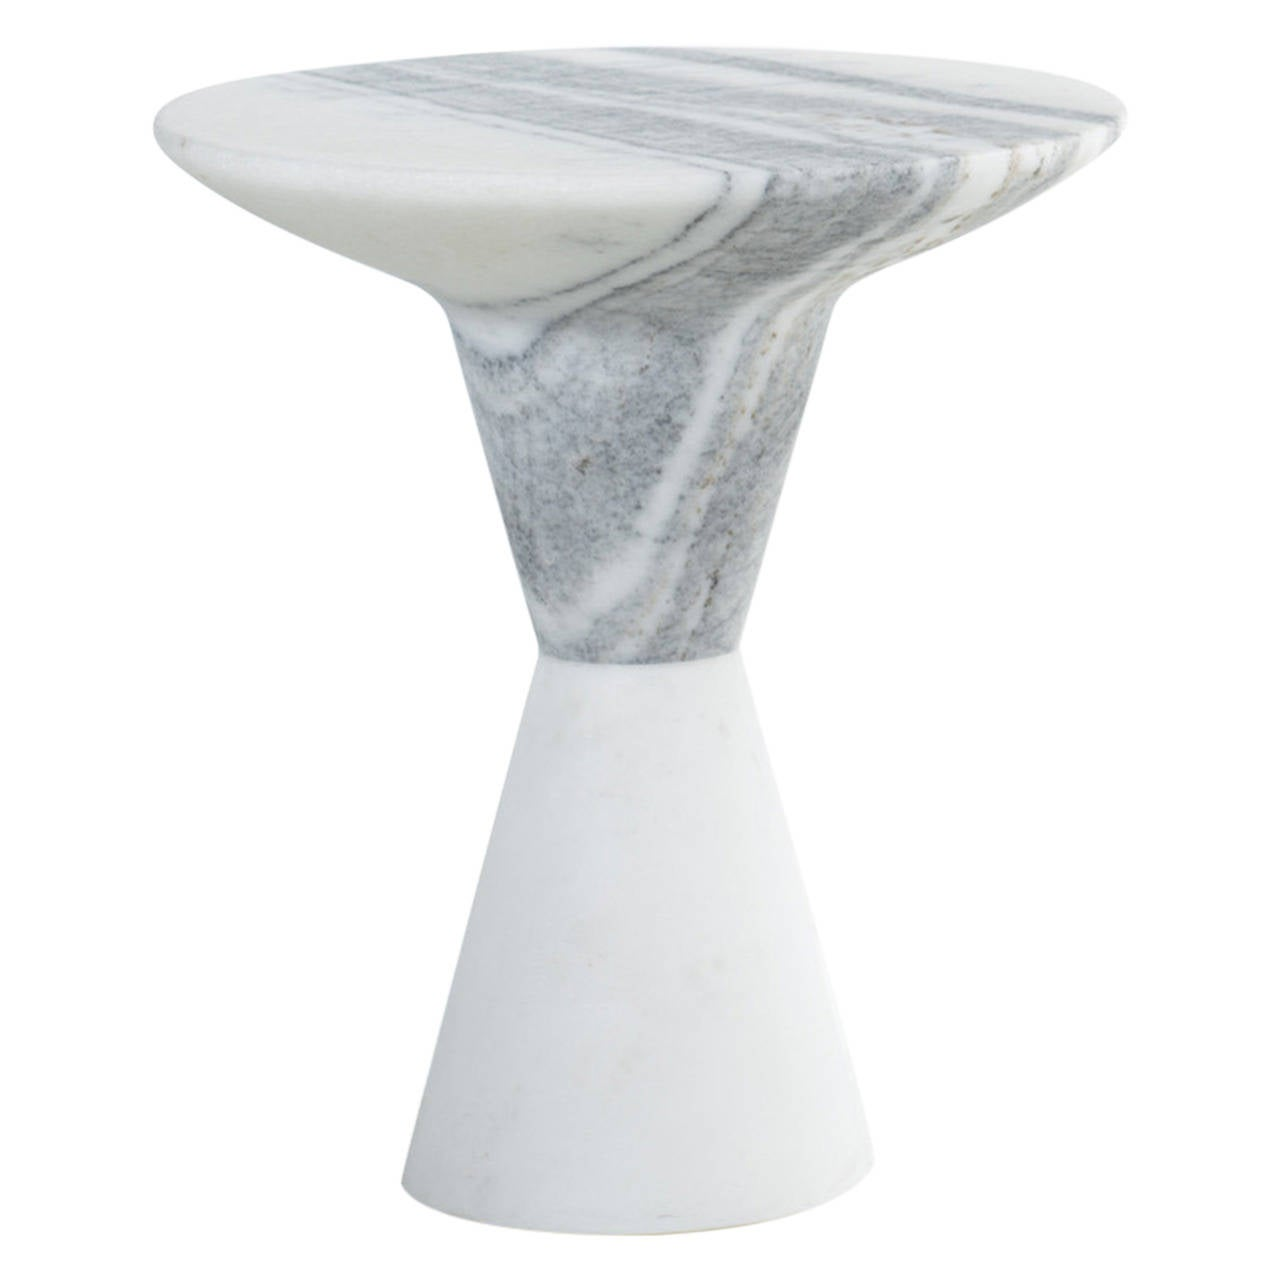 DeMarco Side Table or End Table in Solid Hewn White Marble